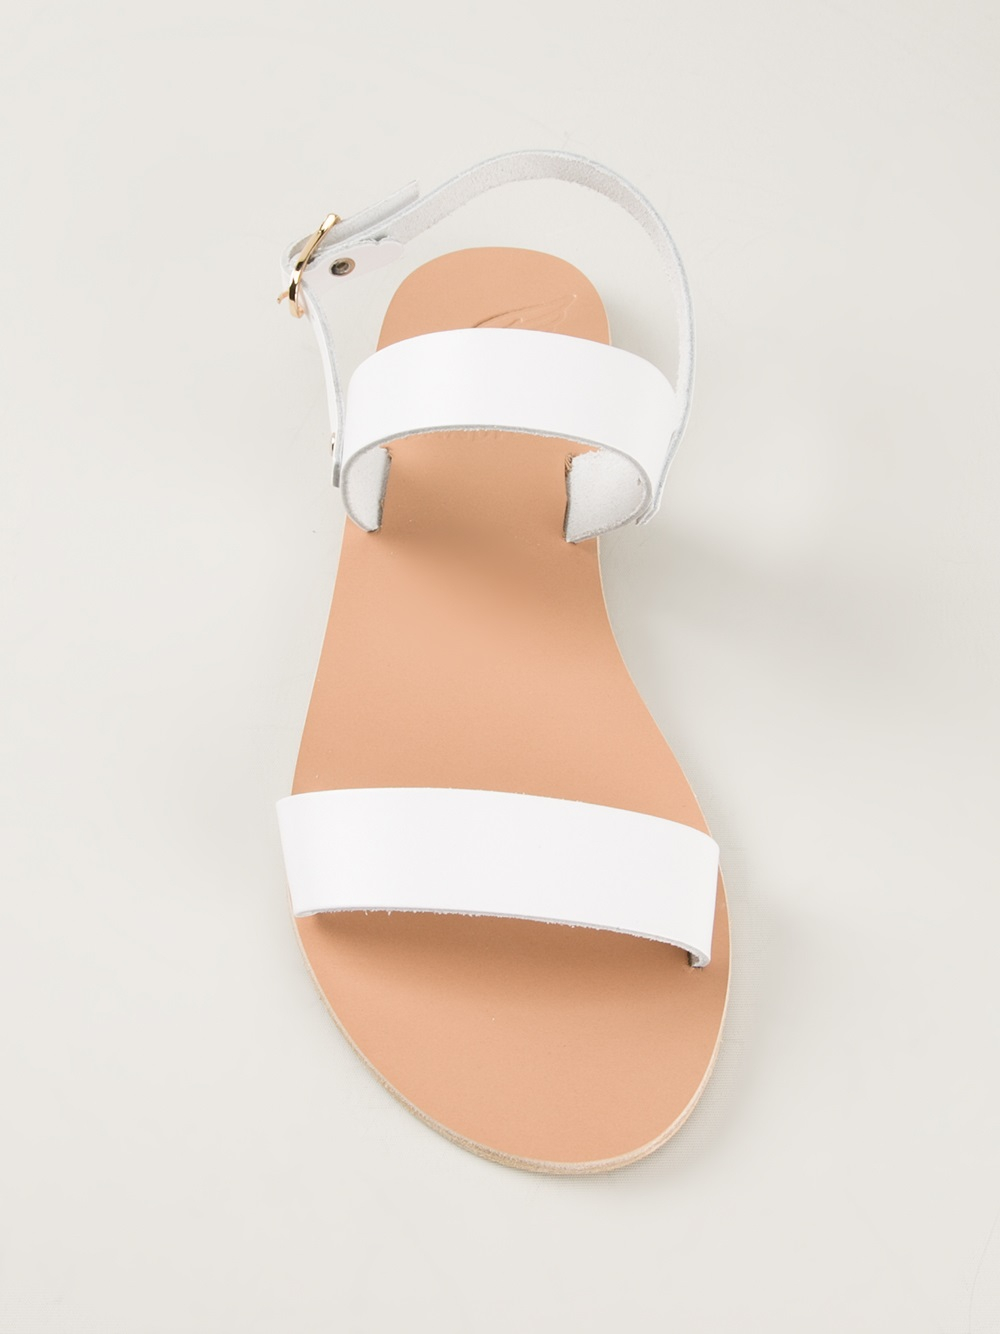 Lyst - Ancient Greek Sandals Clio Flat Sandal in White